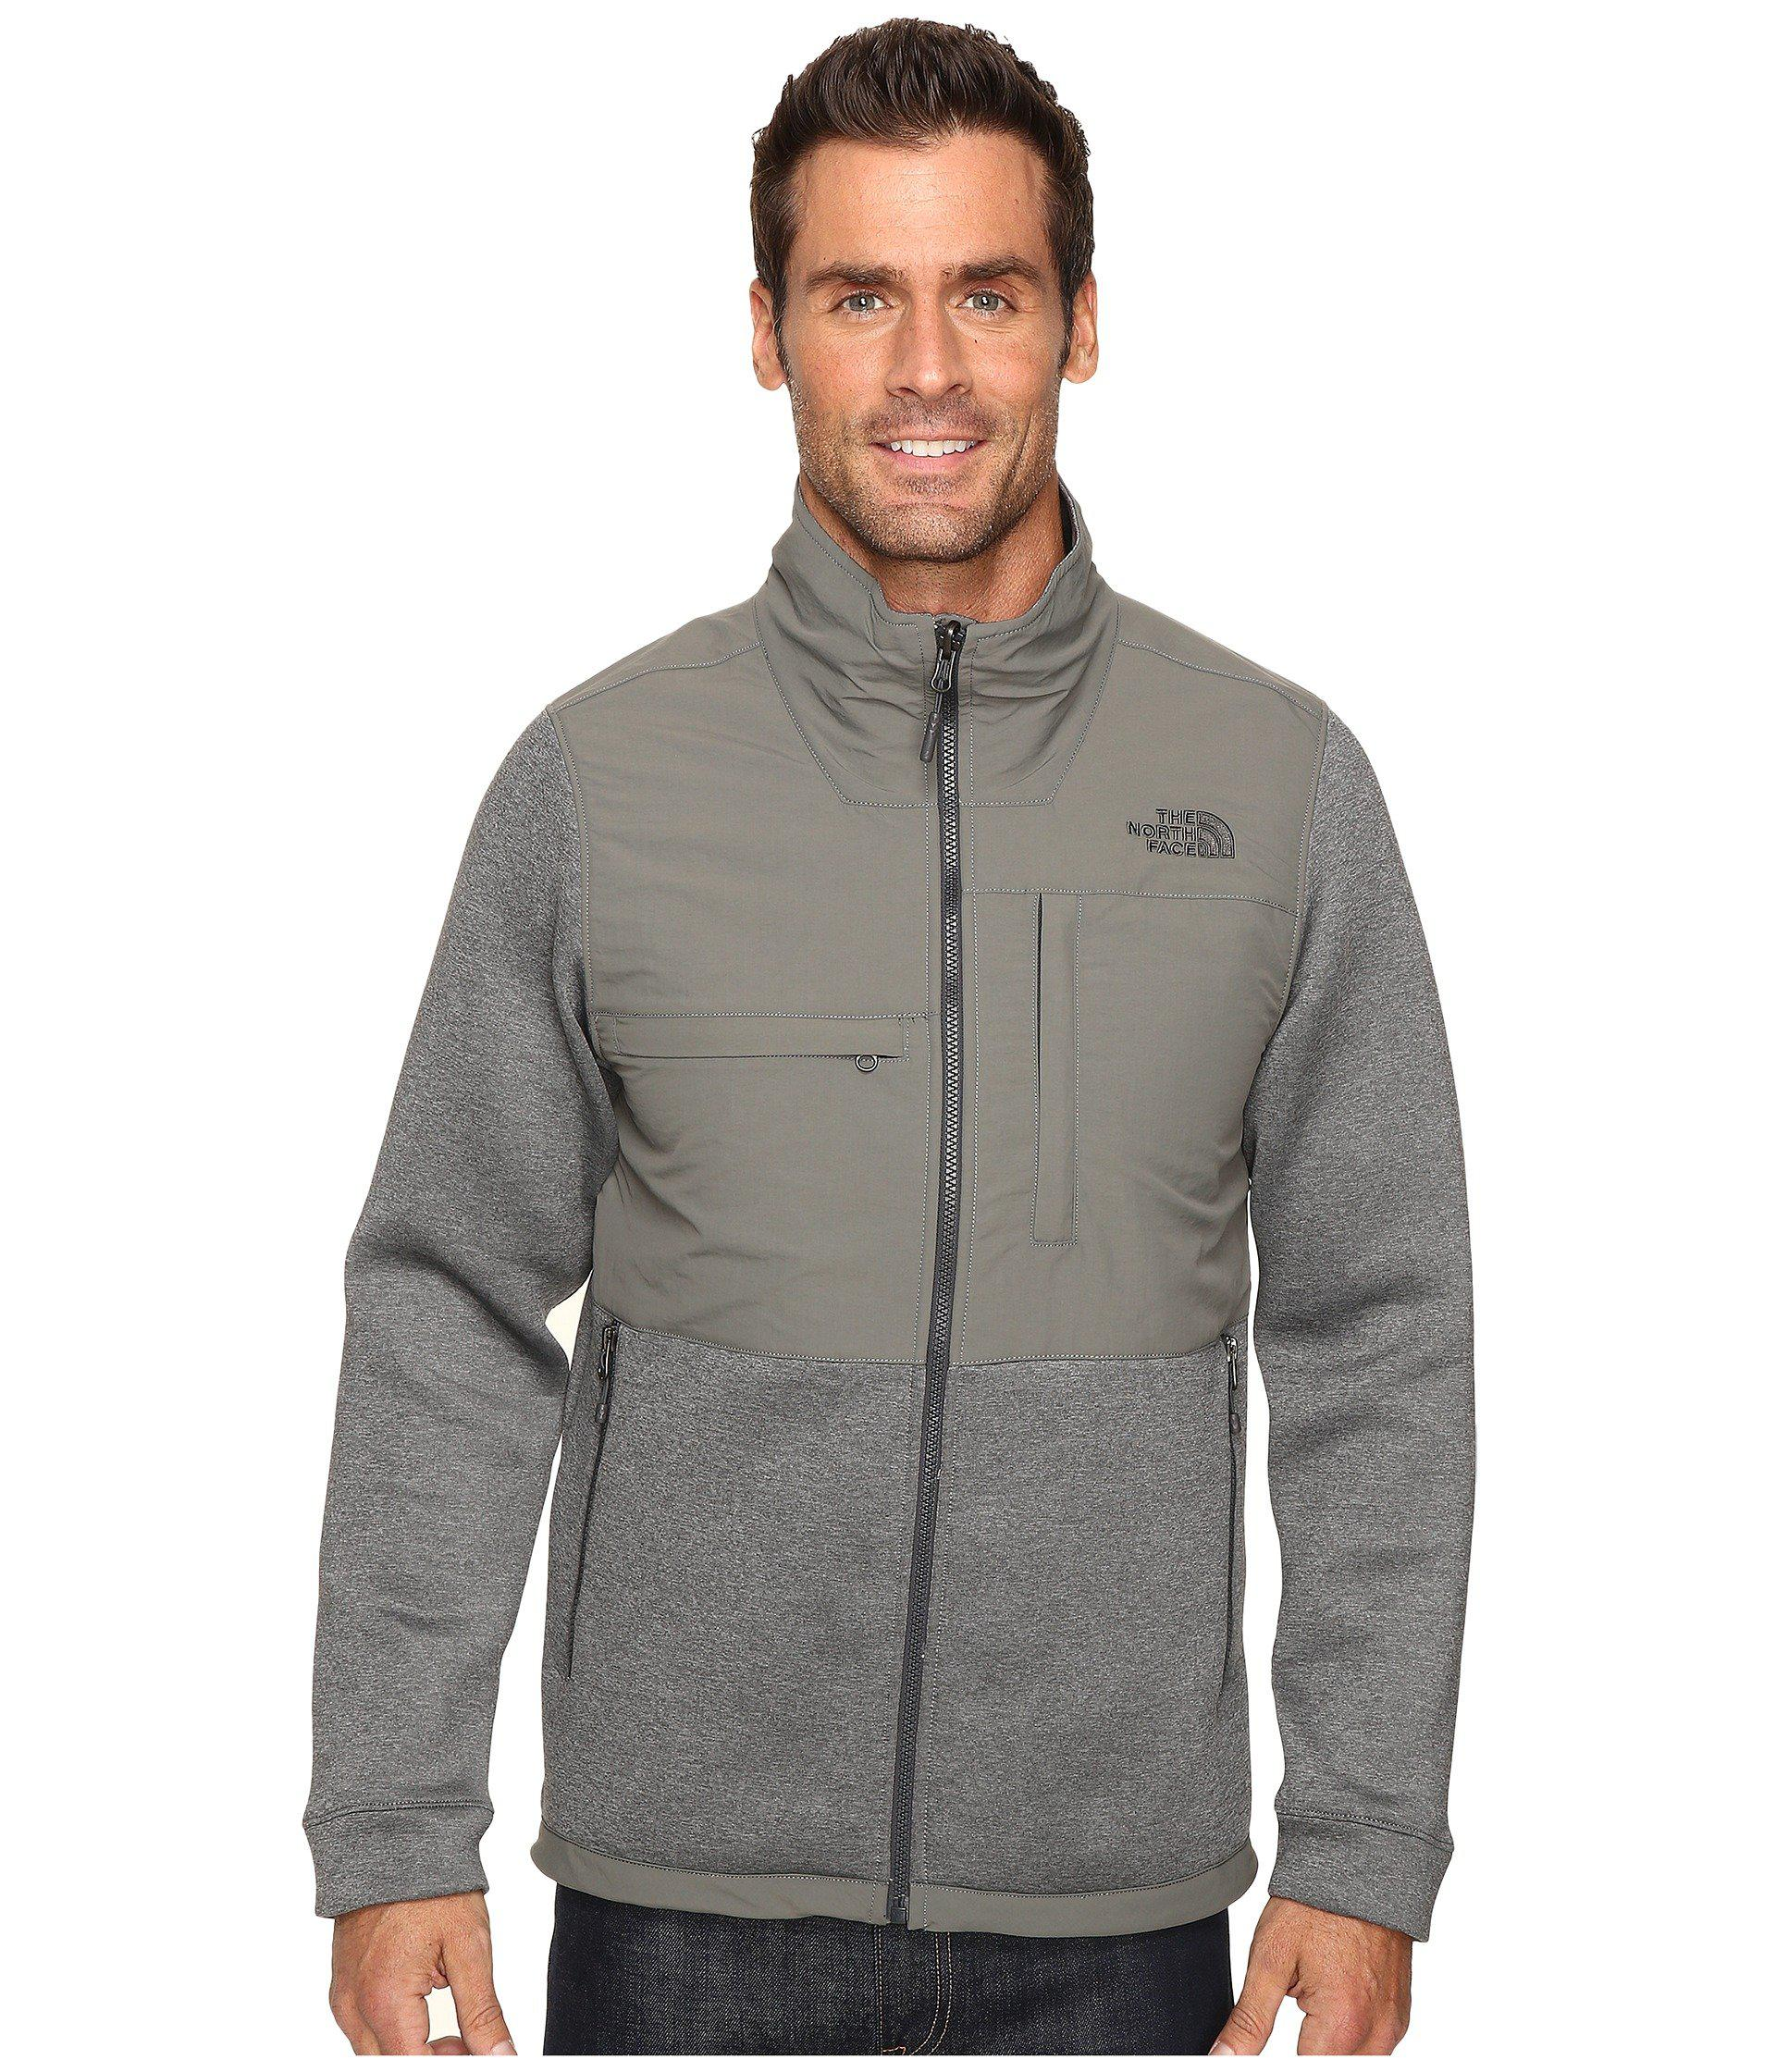 e34879f4e The North Face Novelty Denali Jacket in Gray for Men - Lyst